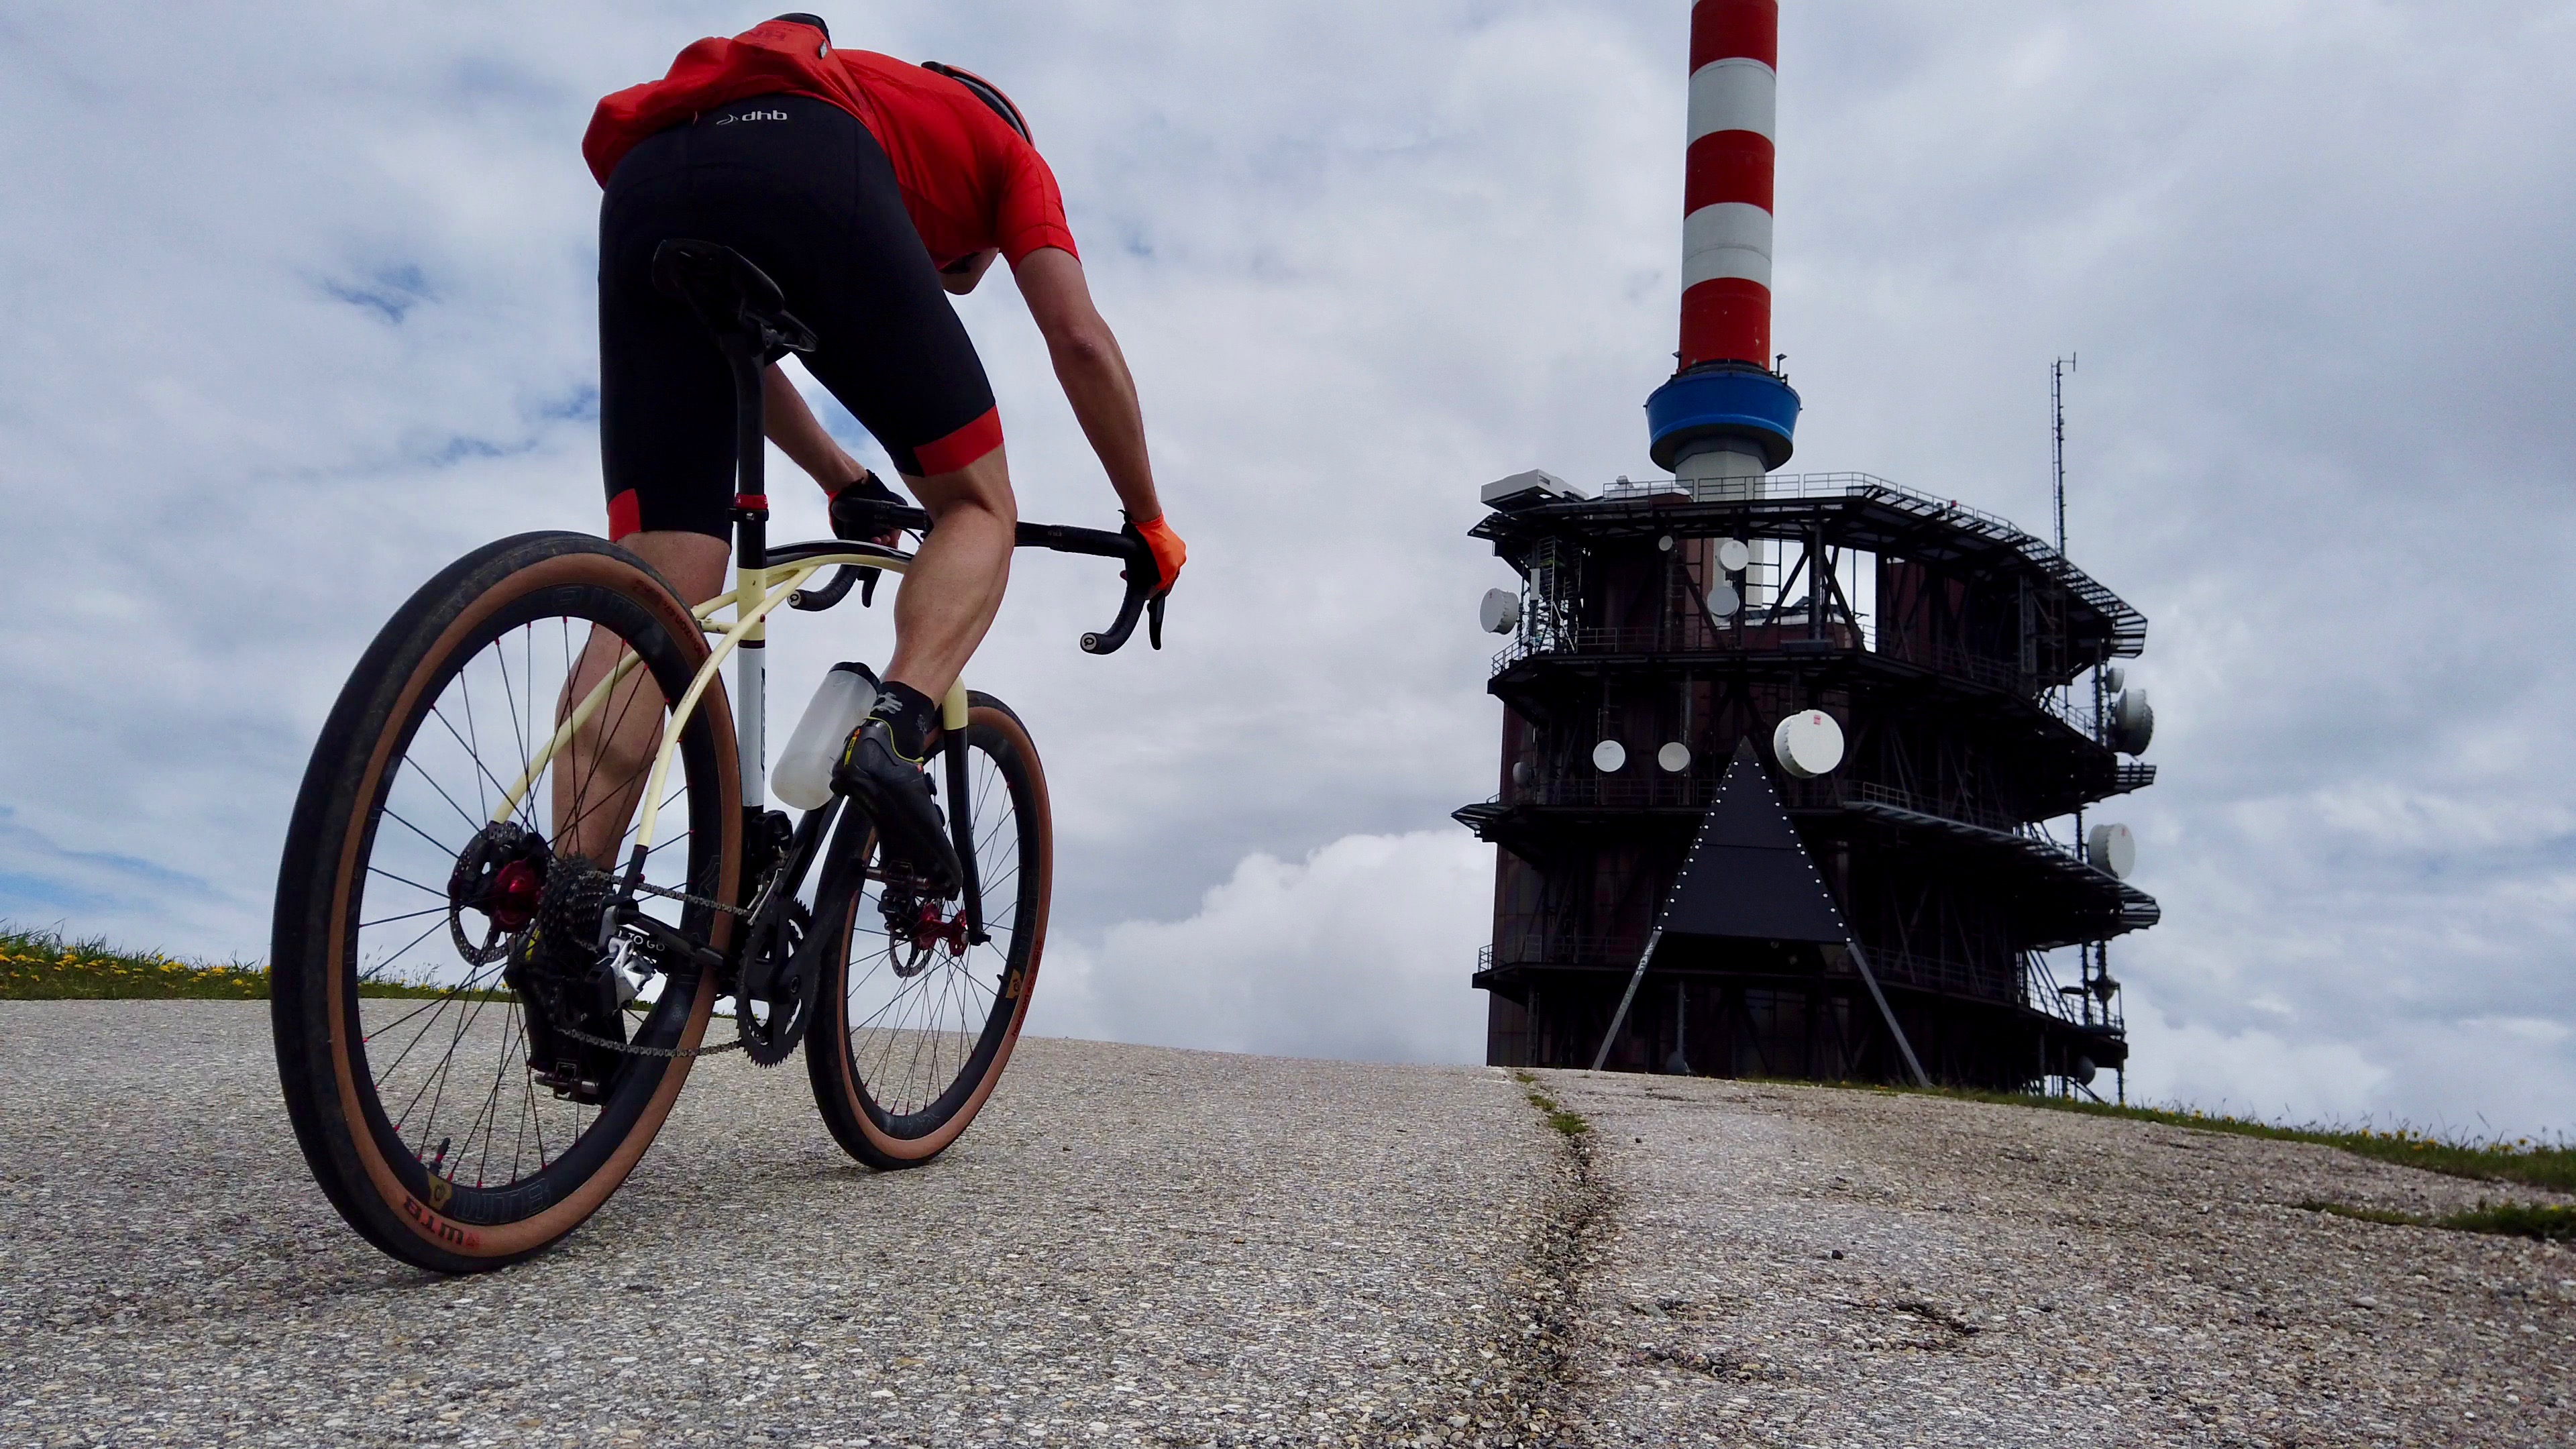 Reaching the Chasseral on my Volagi Viaje SL.